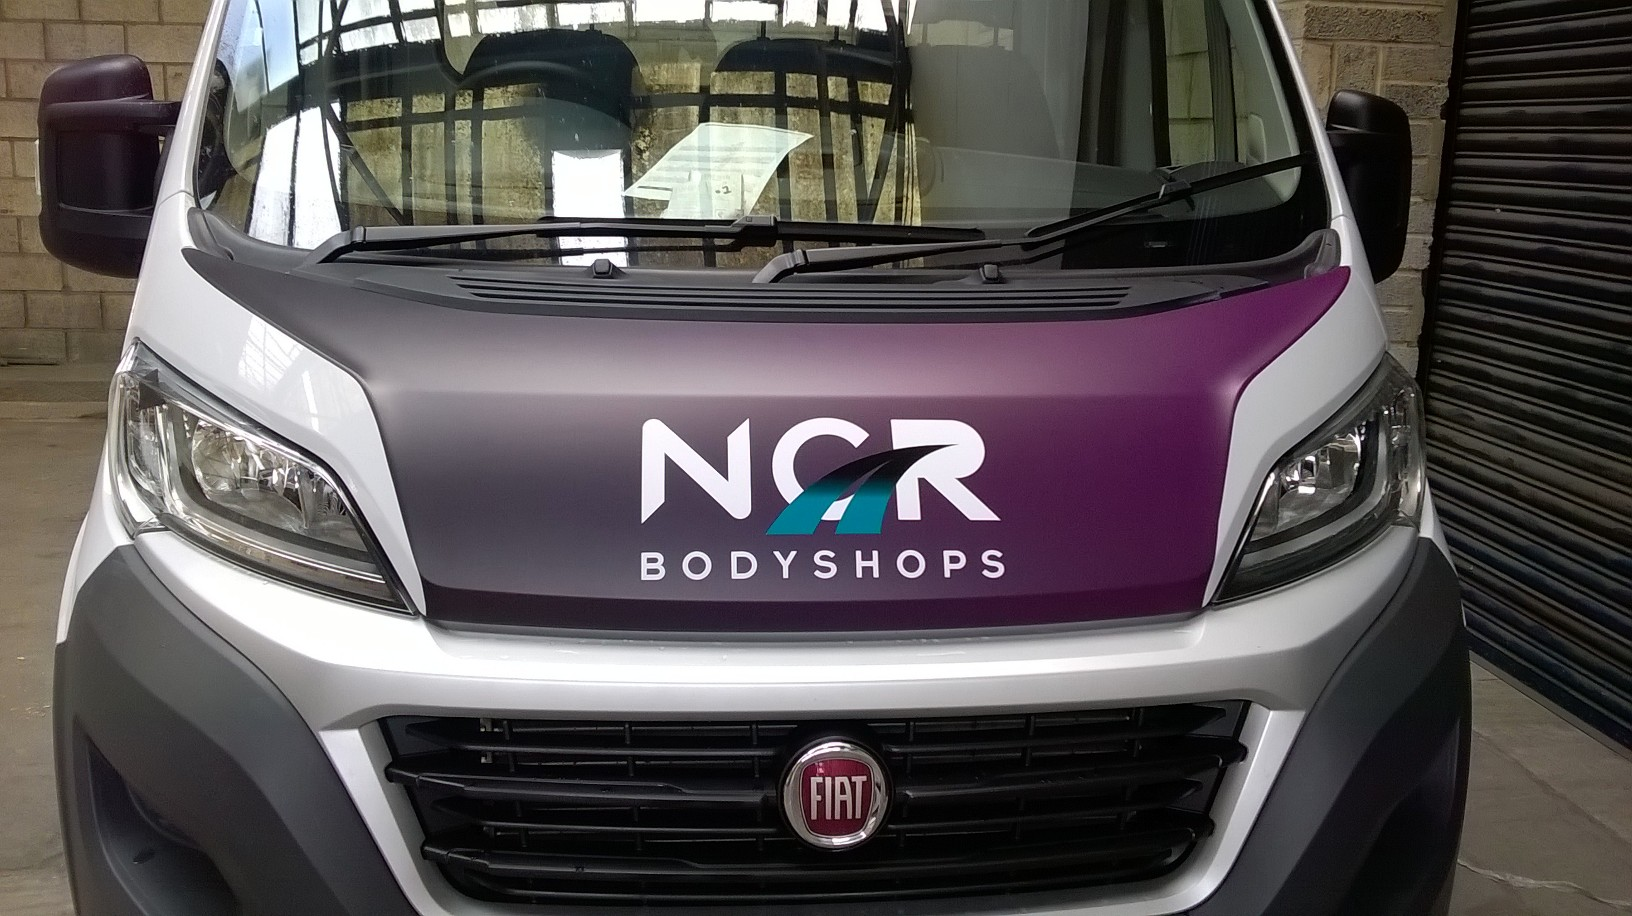 Vehicle Signage for NCR Bodyshops